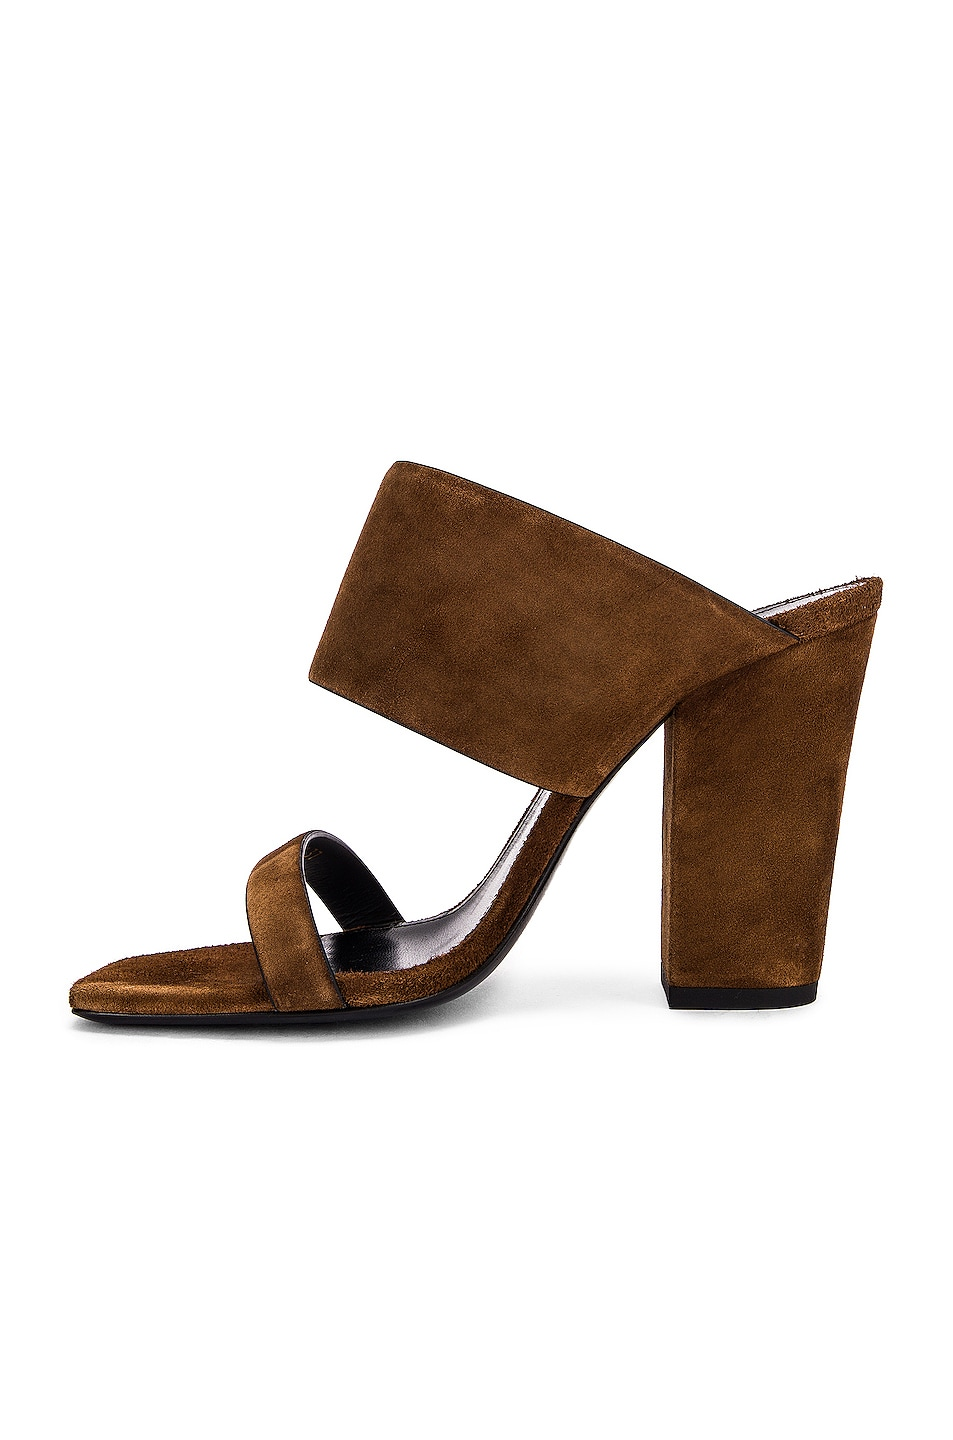 Image 5 of Saint Laurent Suede Oak Mules in Caramel